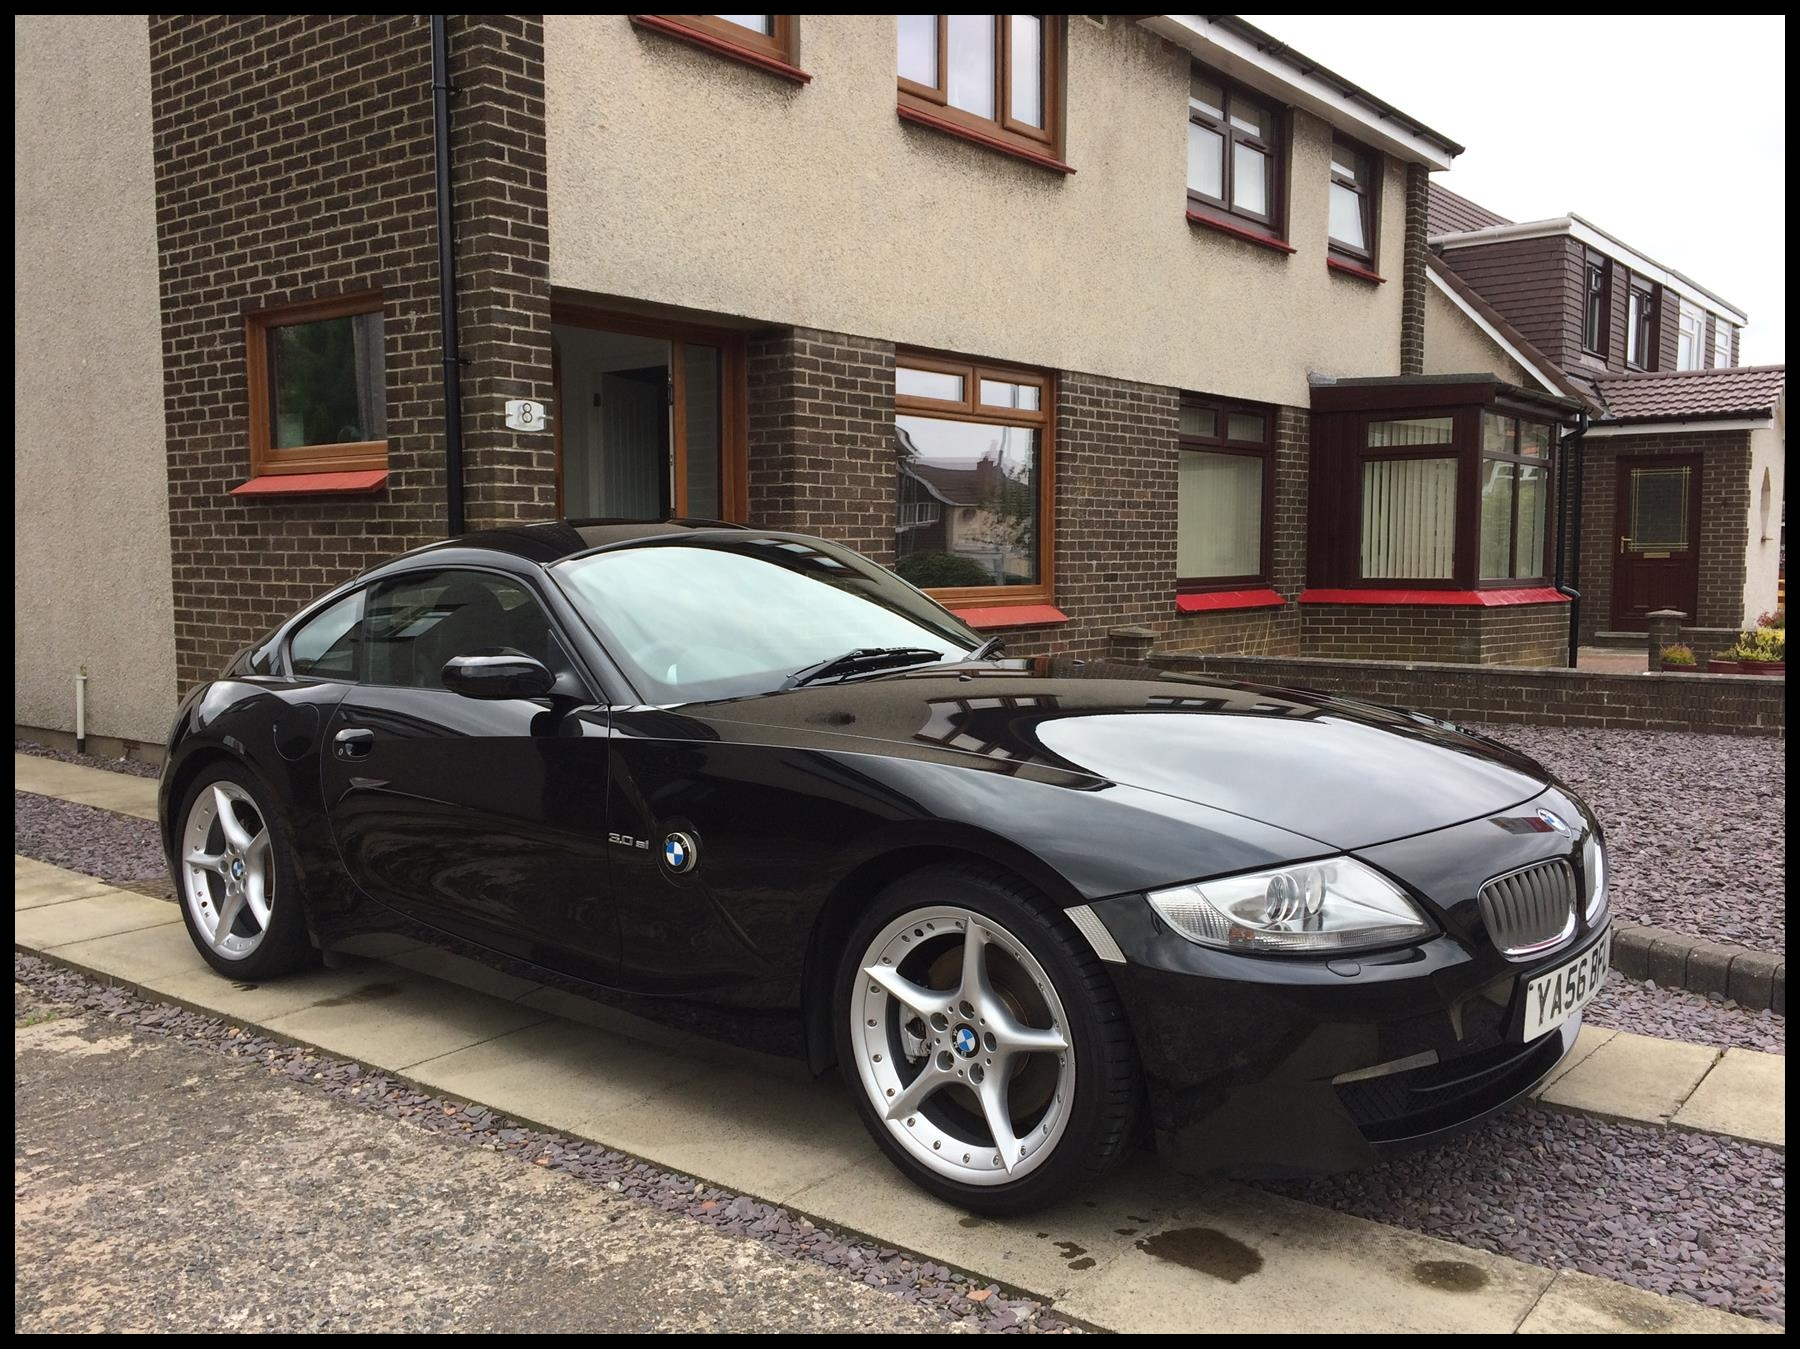 BMW Z4 3 0 Si SPORT COUPE MANUAL Full Service History 1 Previous Owner 2007 2007